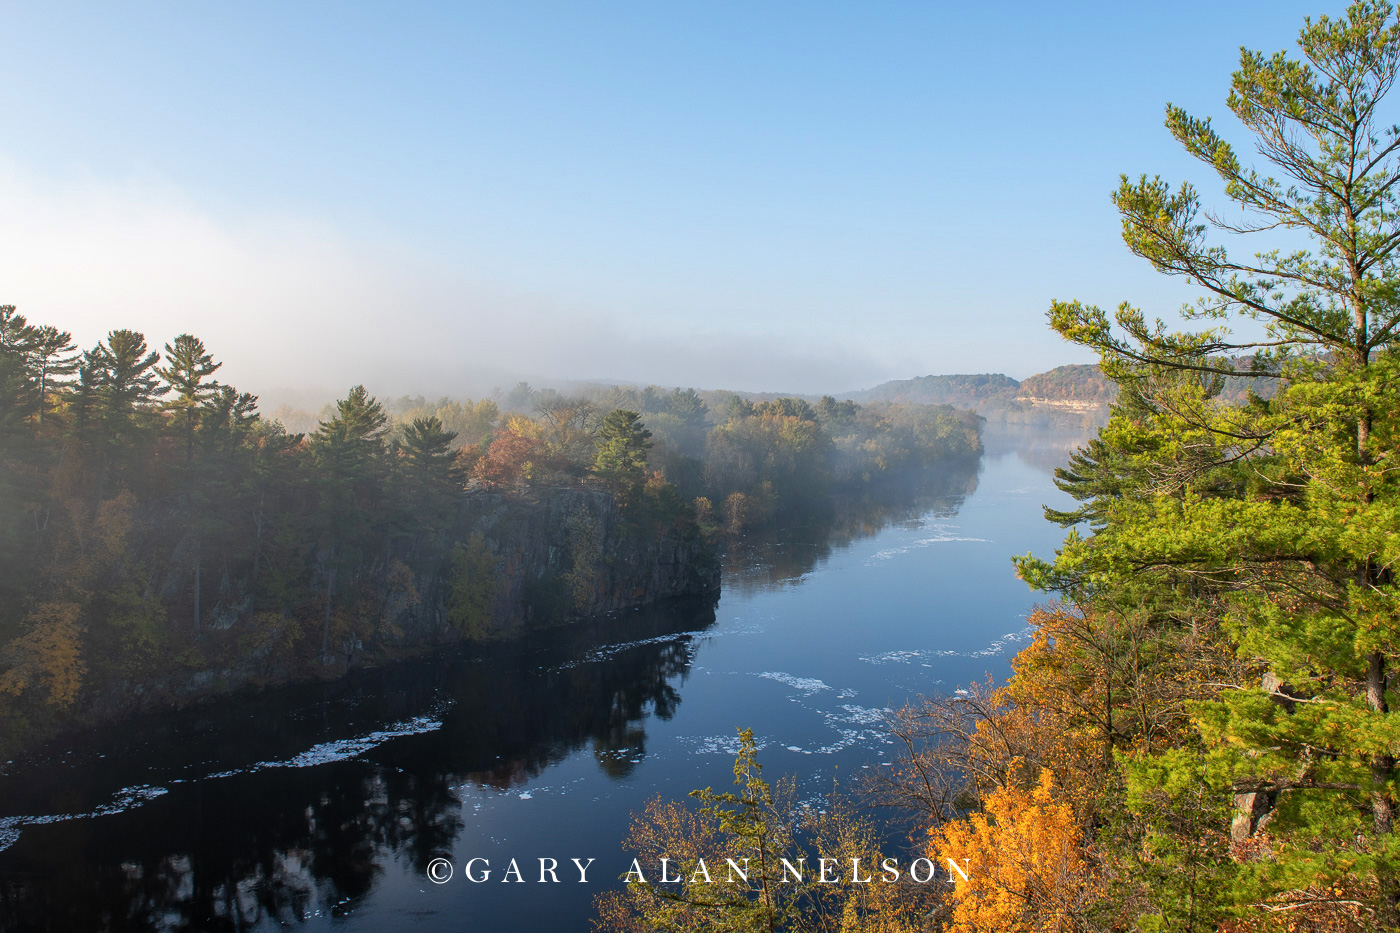 Sunrise, autum and fog over the St. Croix River, St. Croix National and Scenic River, Minnesota/Wisconsin